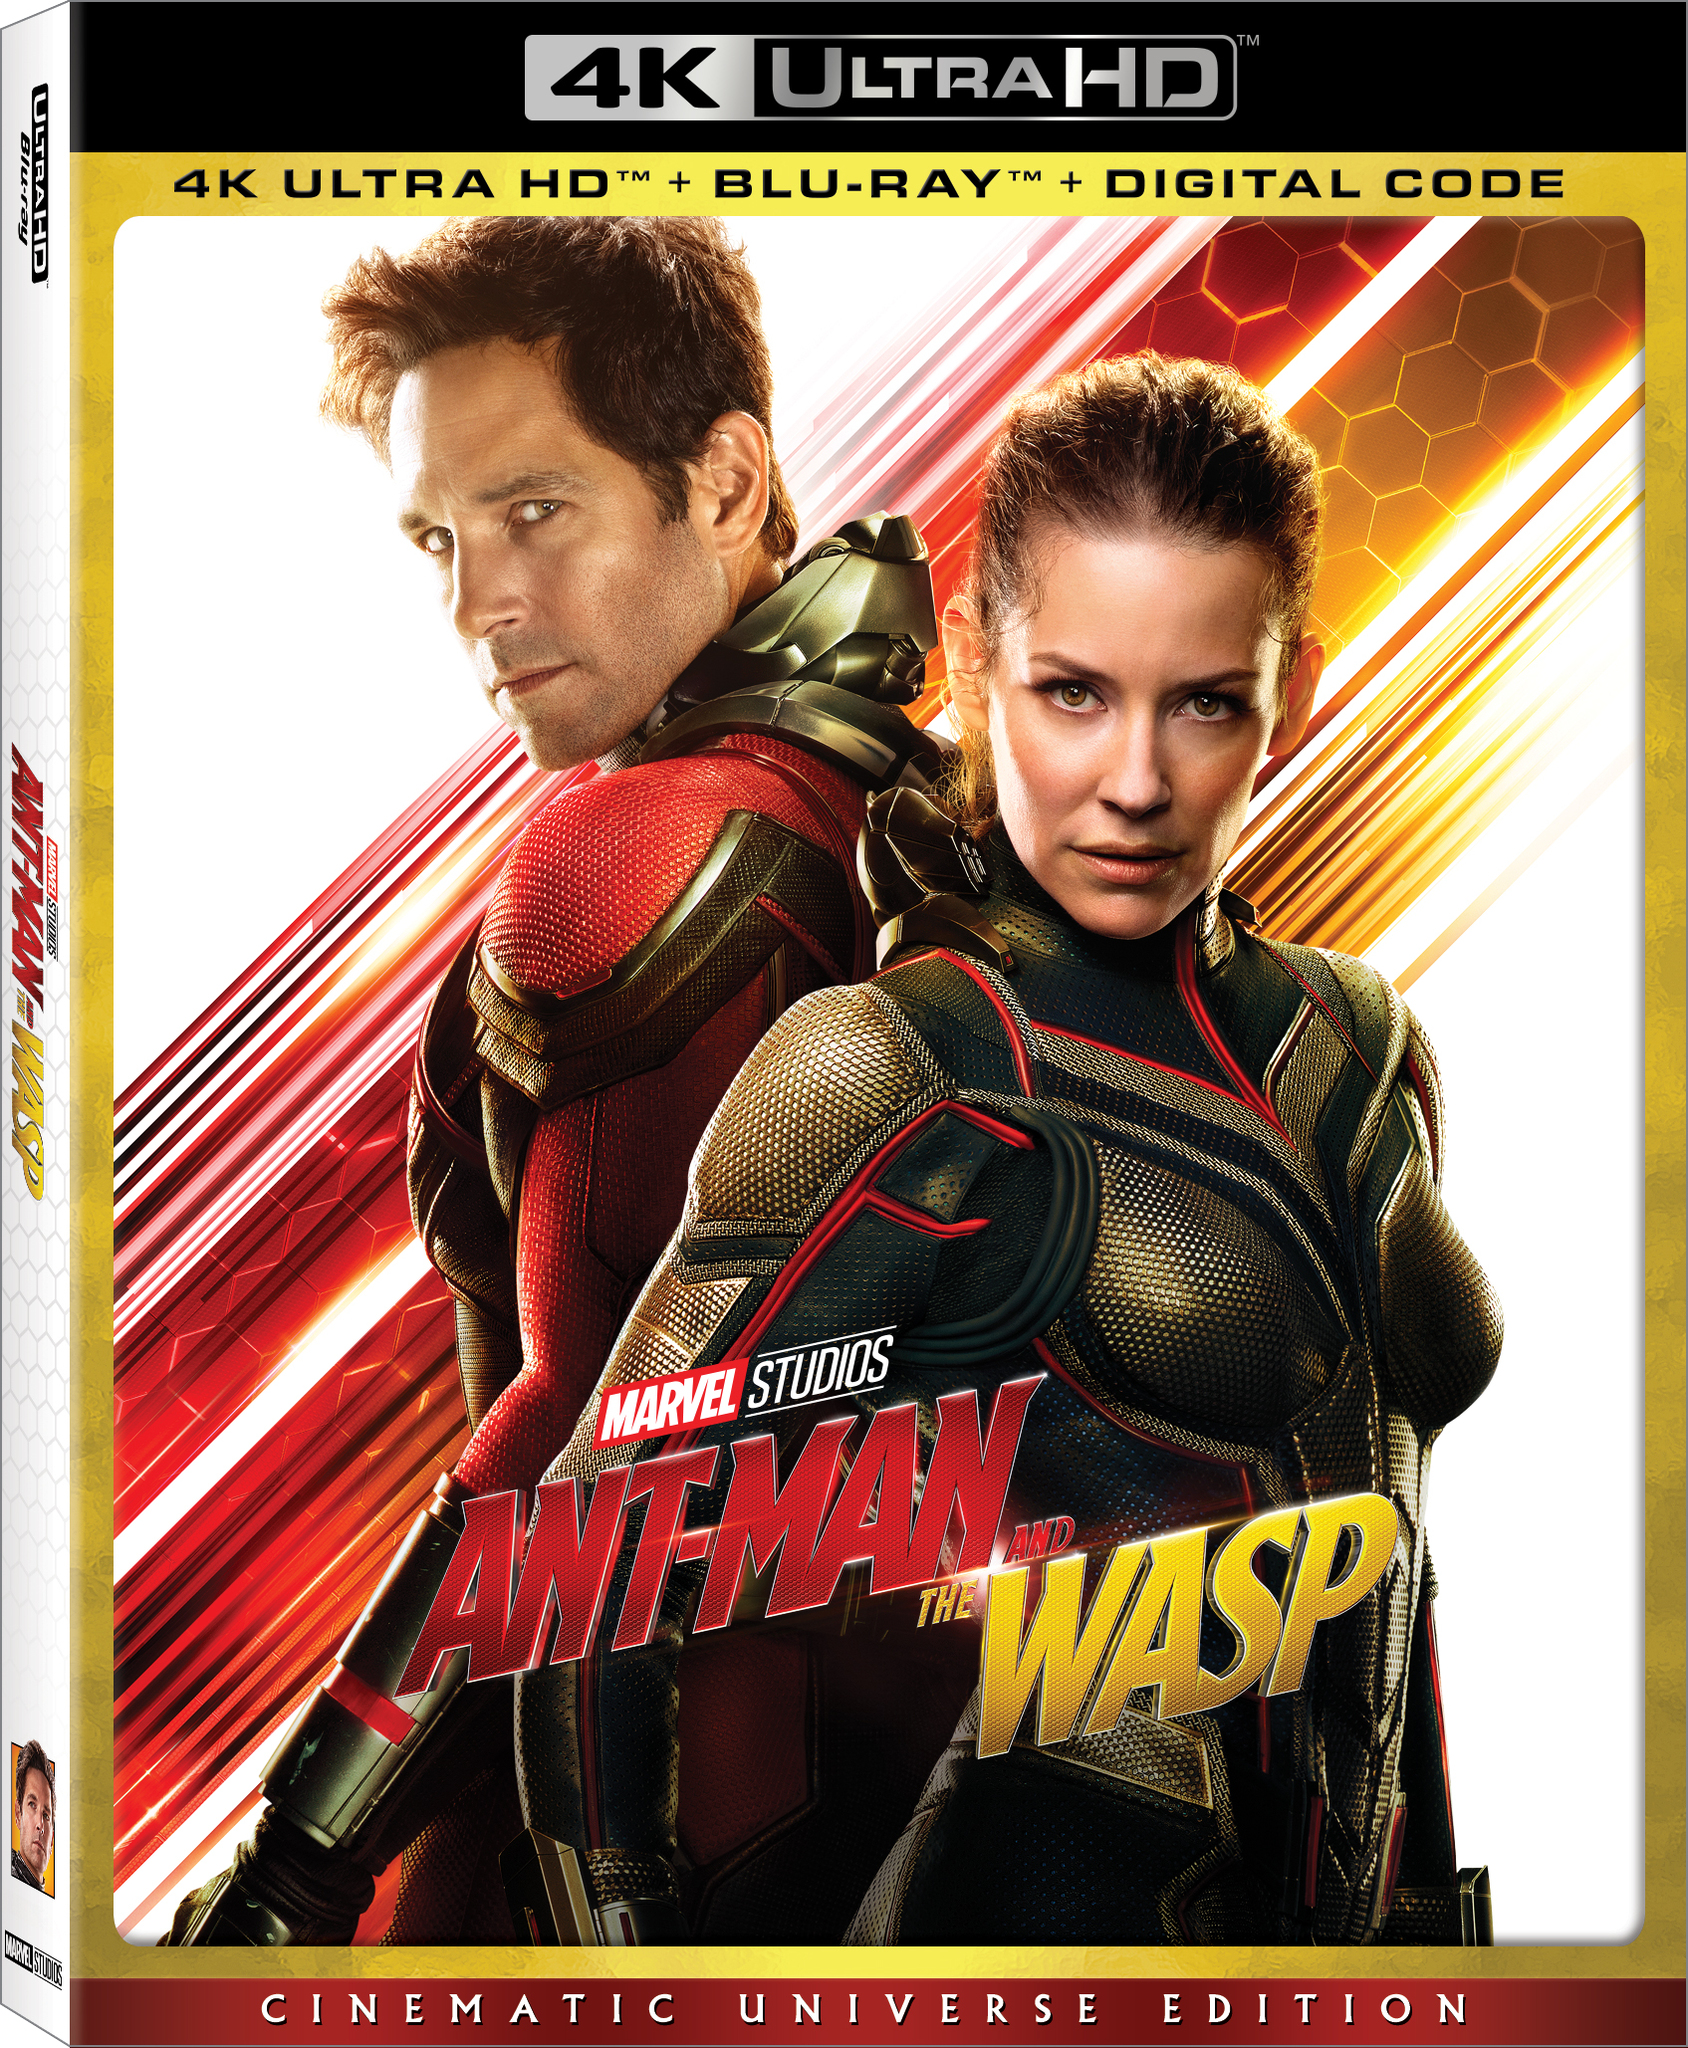 Kettle Chip Nachos and An Ant Size Night In With Ant-Man & The Wasp